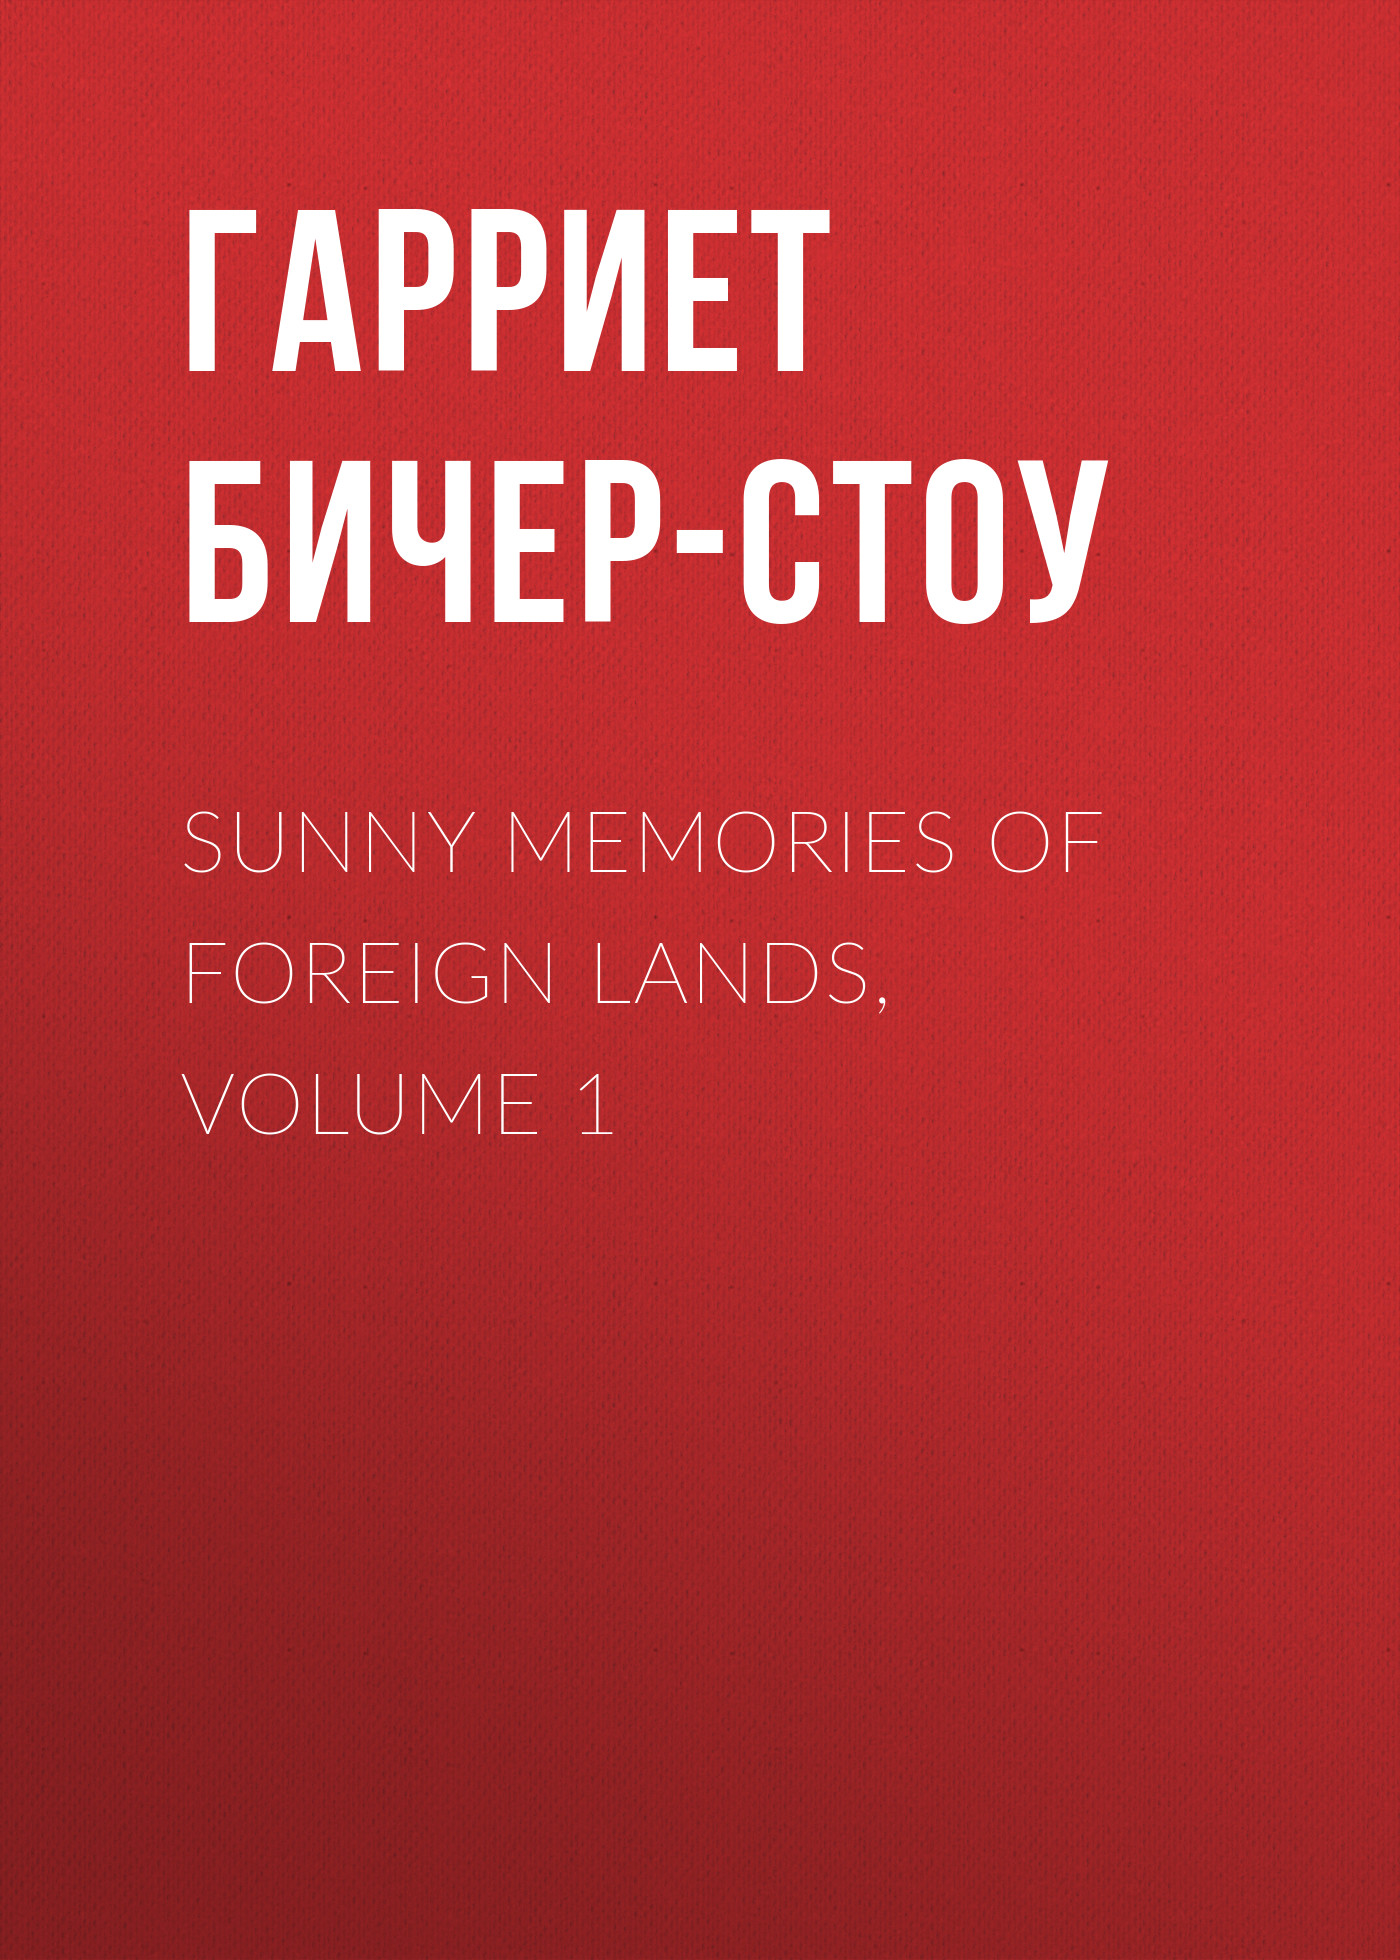 Гарриет Бичер-Стоу Sunny Memories Of Foreign Lands, Volume 1 mitchell donald grant english lands letters and kings volume 1